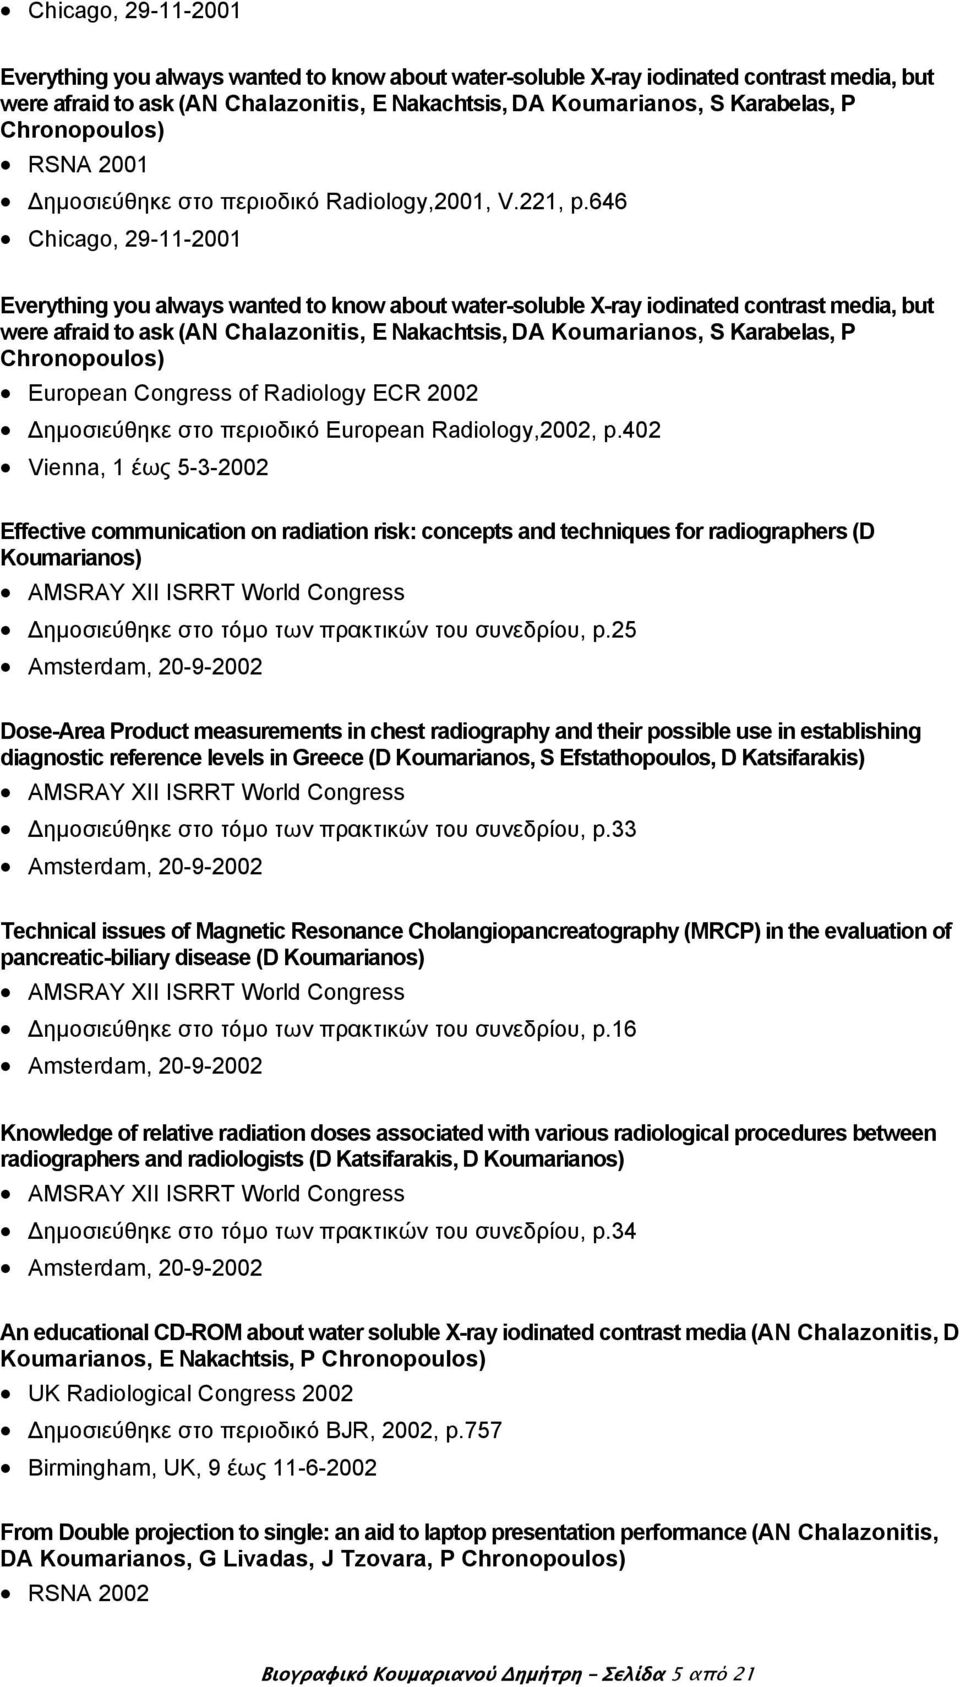 402 Vienna, 1 έως 5-3-2002 Effective communication on radiation risk: concepts and techniques for radiographers (D Koumarianos) AMSRAY XII ISRRT World Congress ημοσιεύθηκε στο τόμο των πρακτικών του